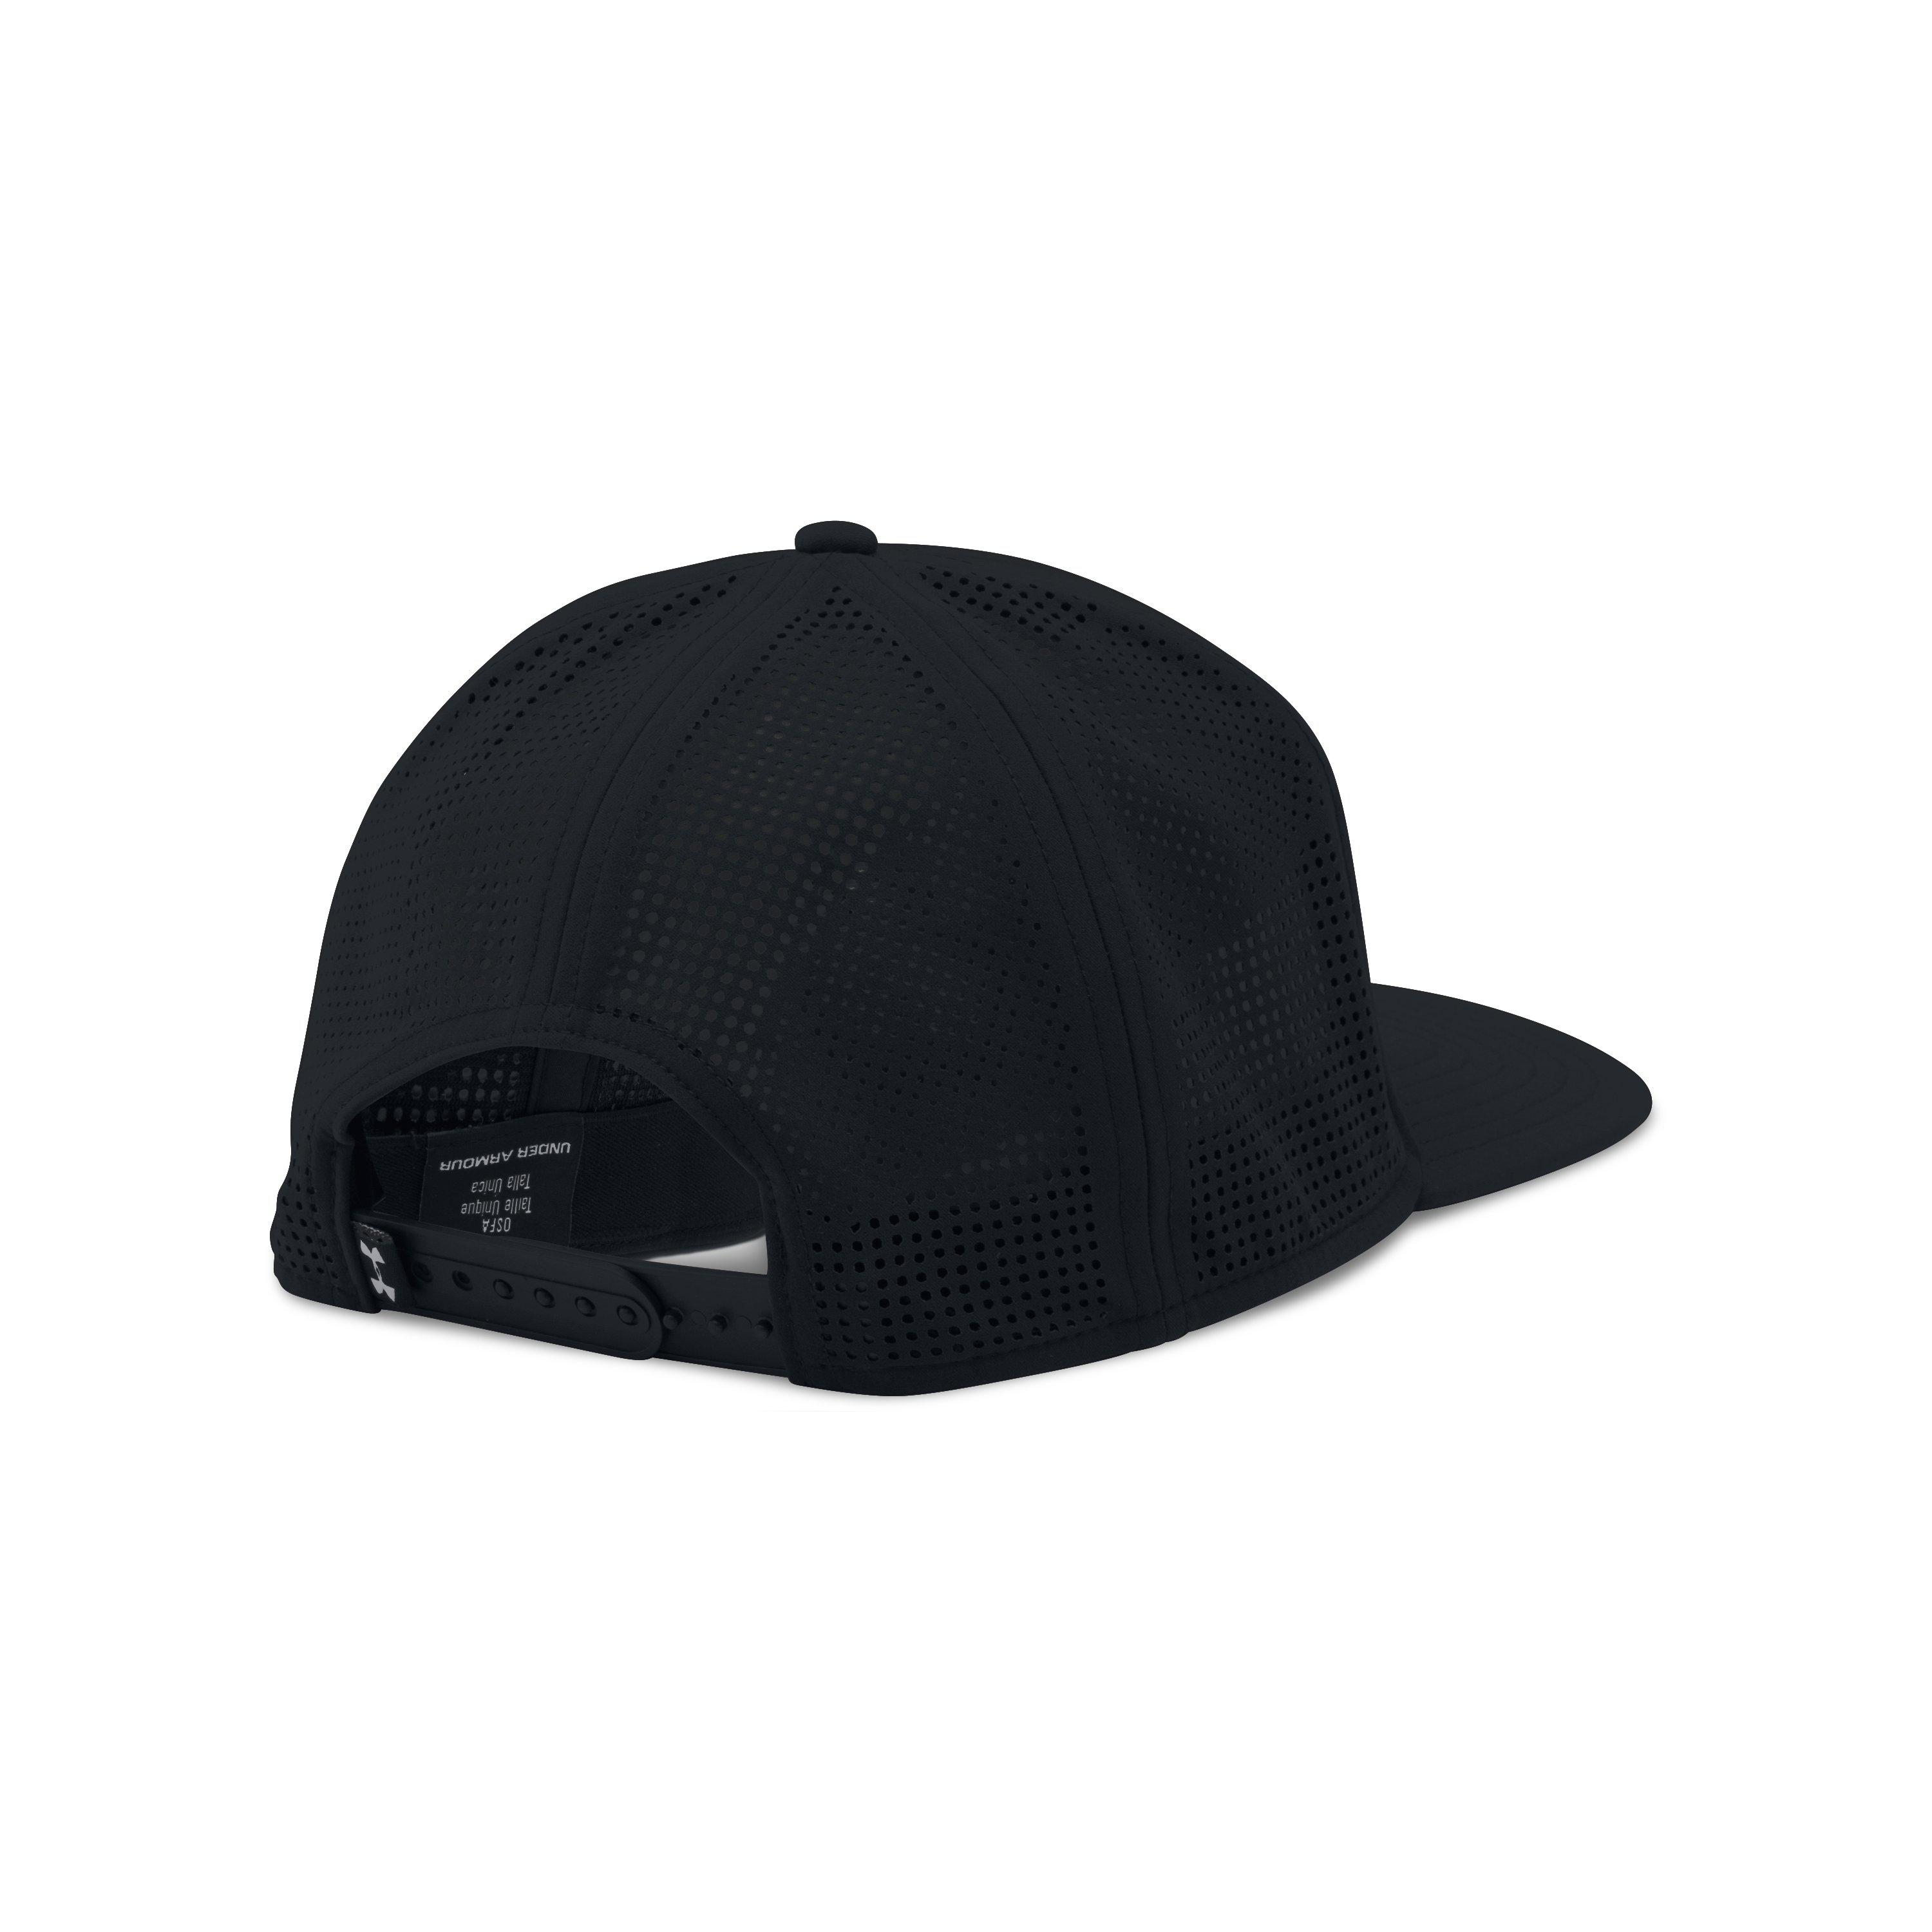 Lyst - Under Armour Supervent Flat Brim Snapback Hat in Black for Men 747a53f015a